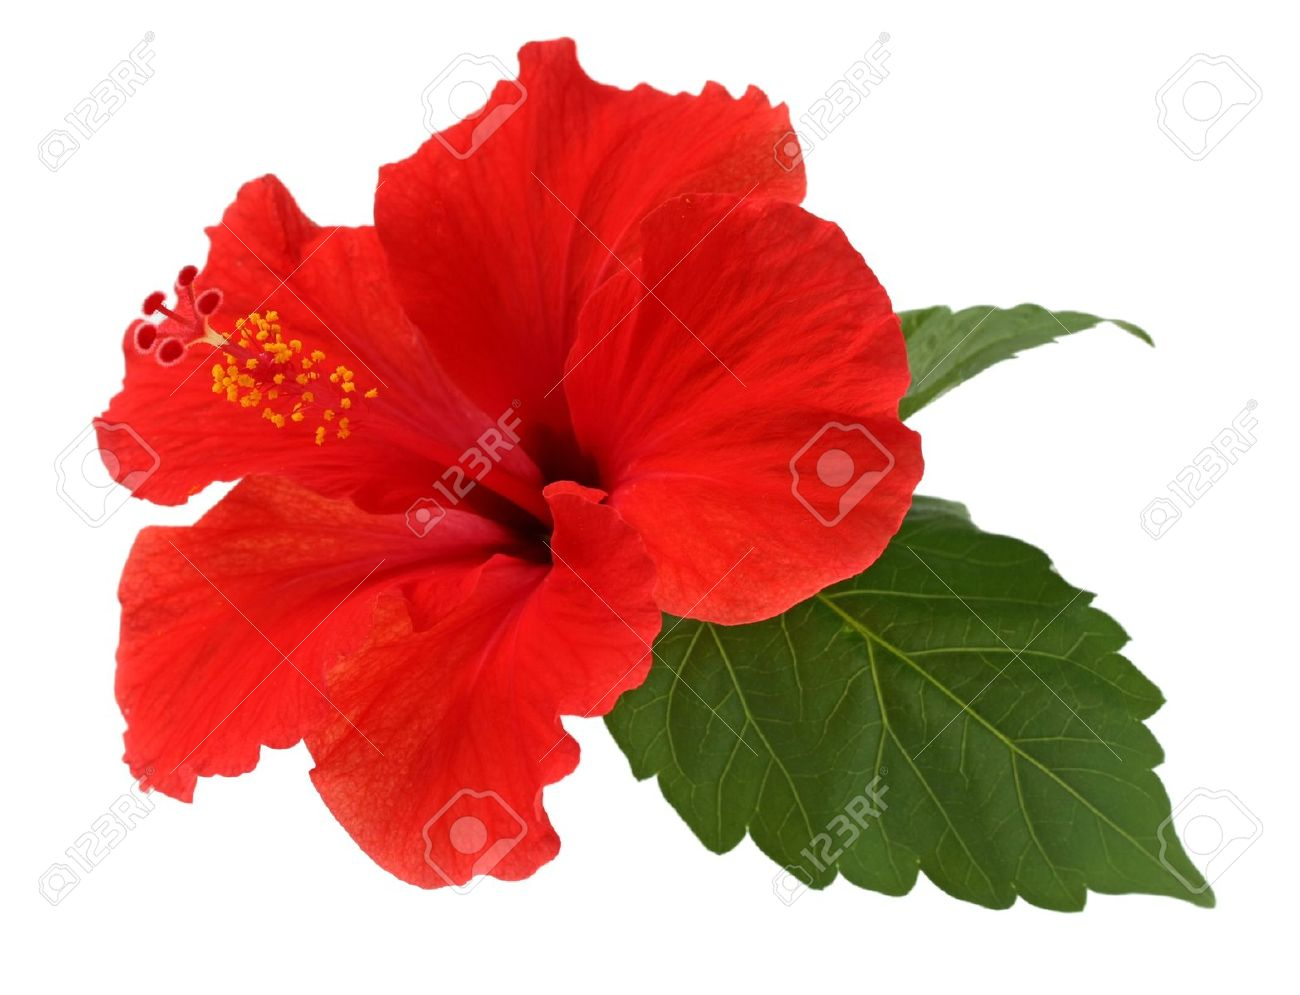 13d95aab4a65 a red hibiscus flower on white background Stock Photo - 10193737